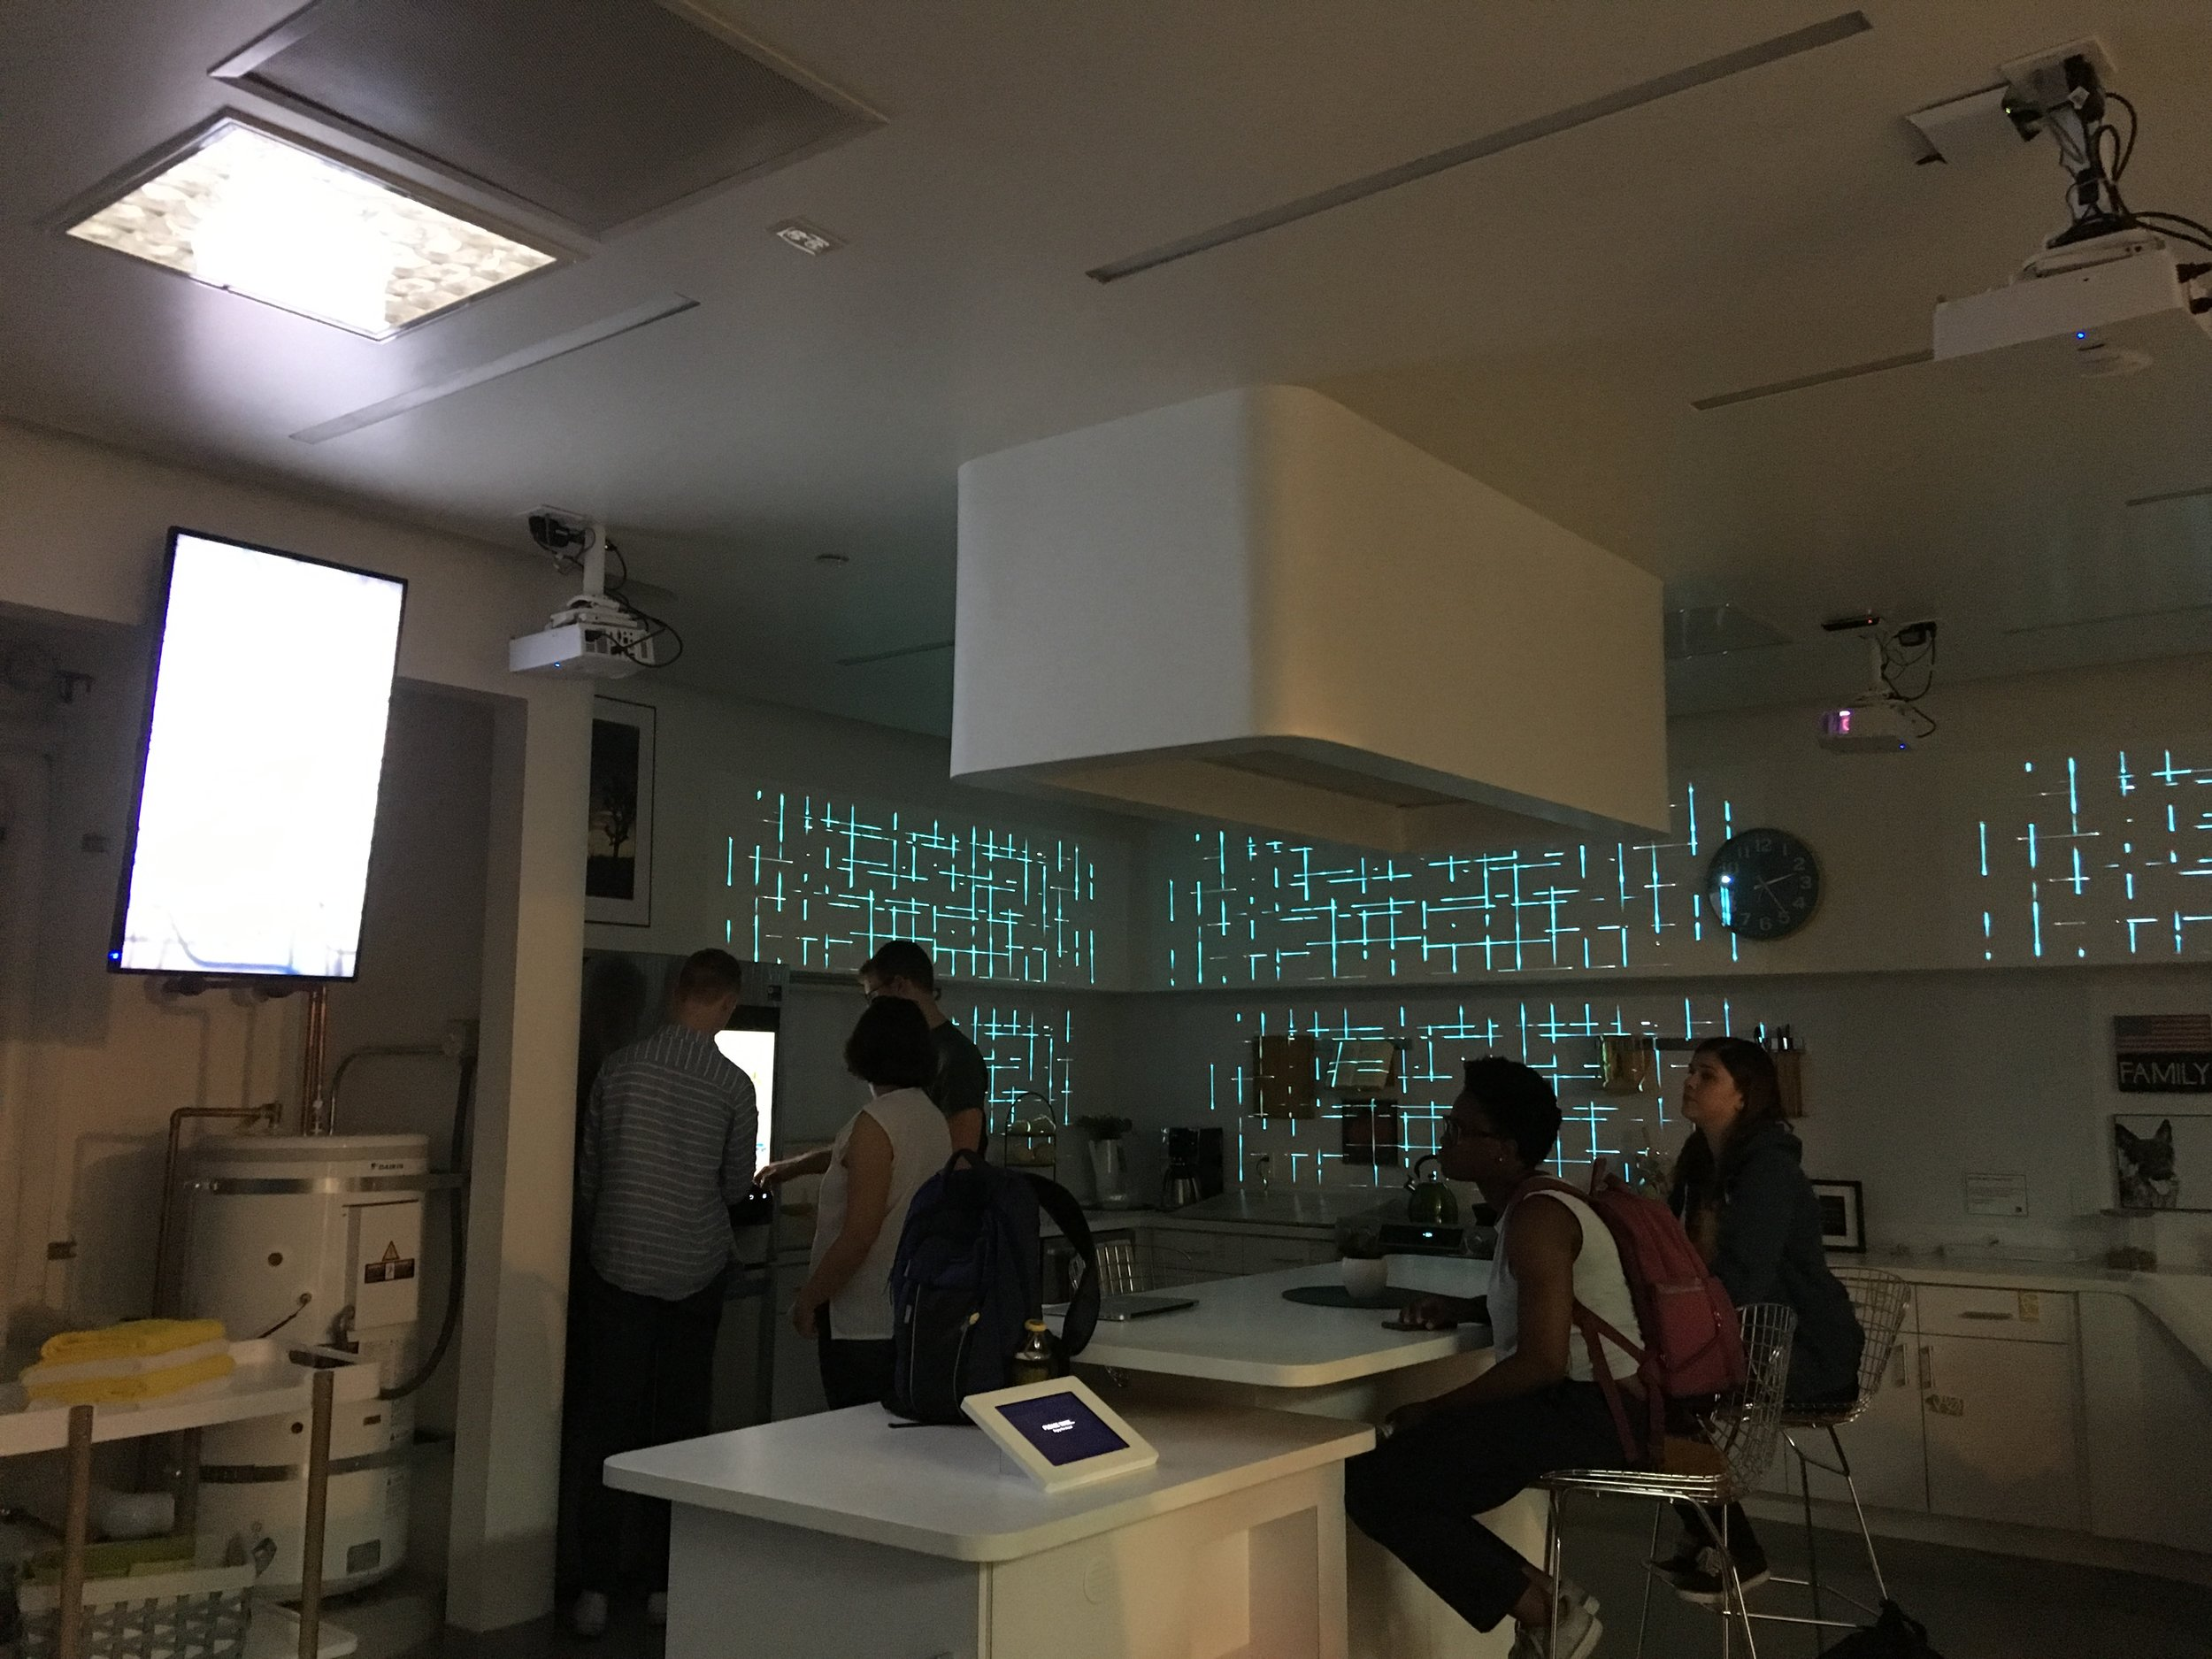 October 26, 2018: Field Lab Visit to Los Angeles Cleantech Incubator (LACI)